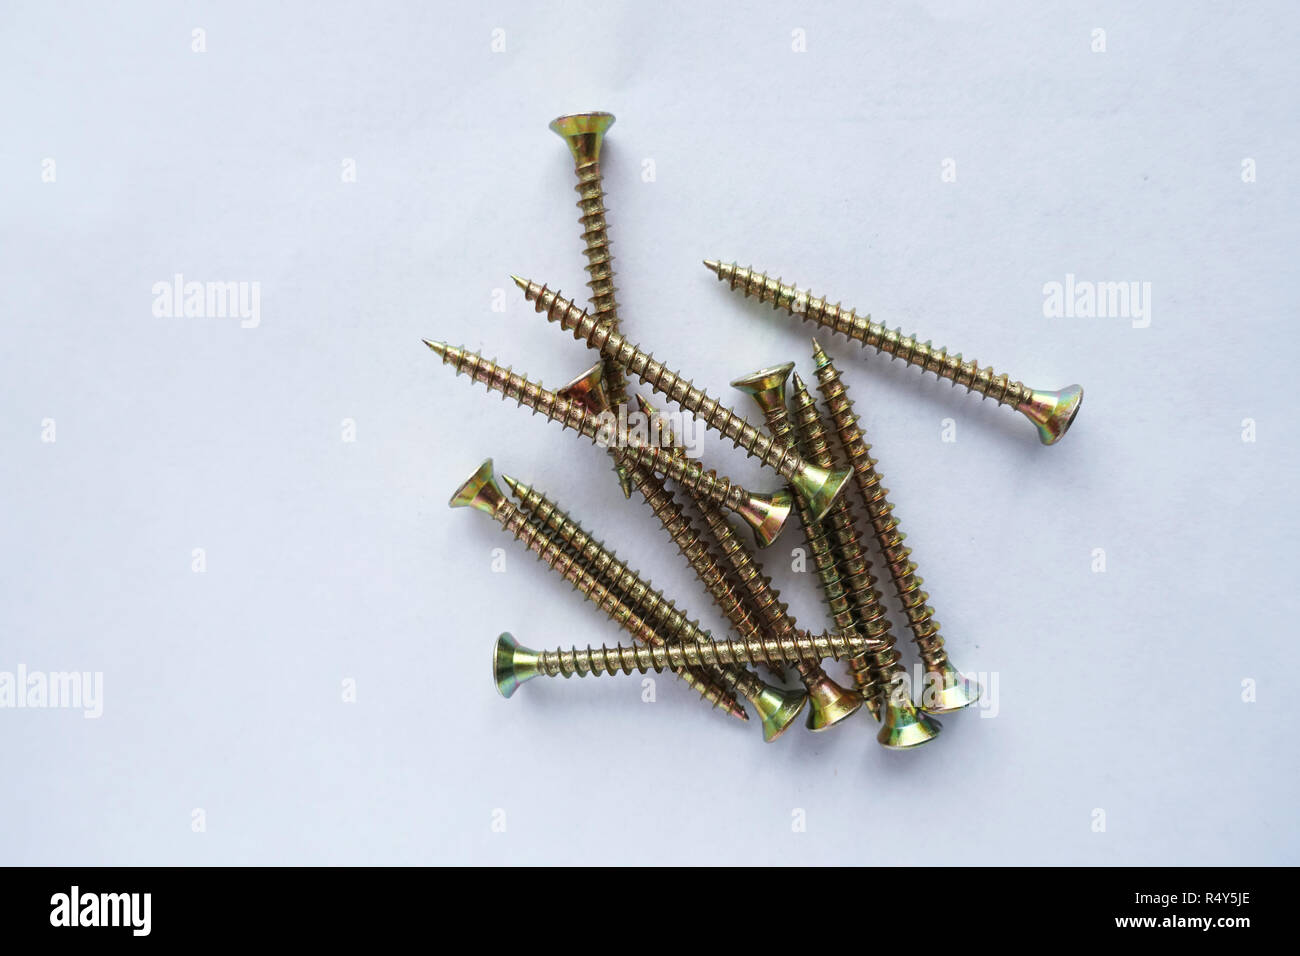 Self tapping screws isolated against white background - Stock Image